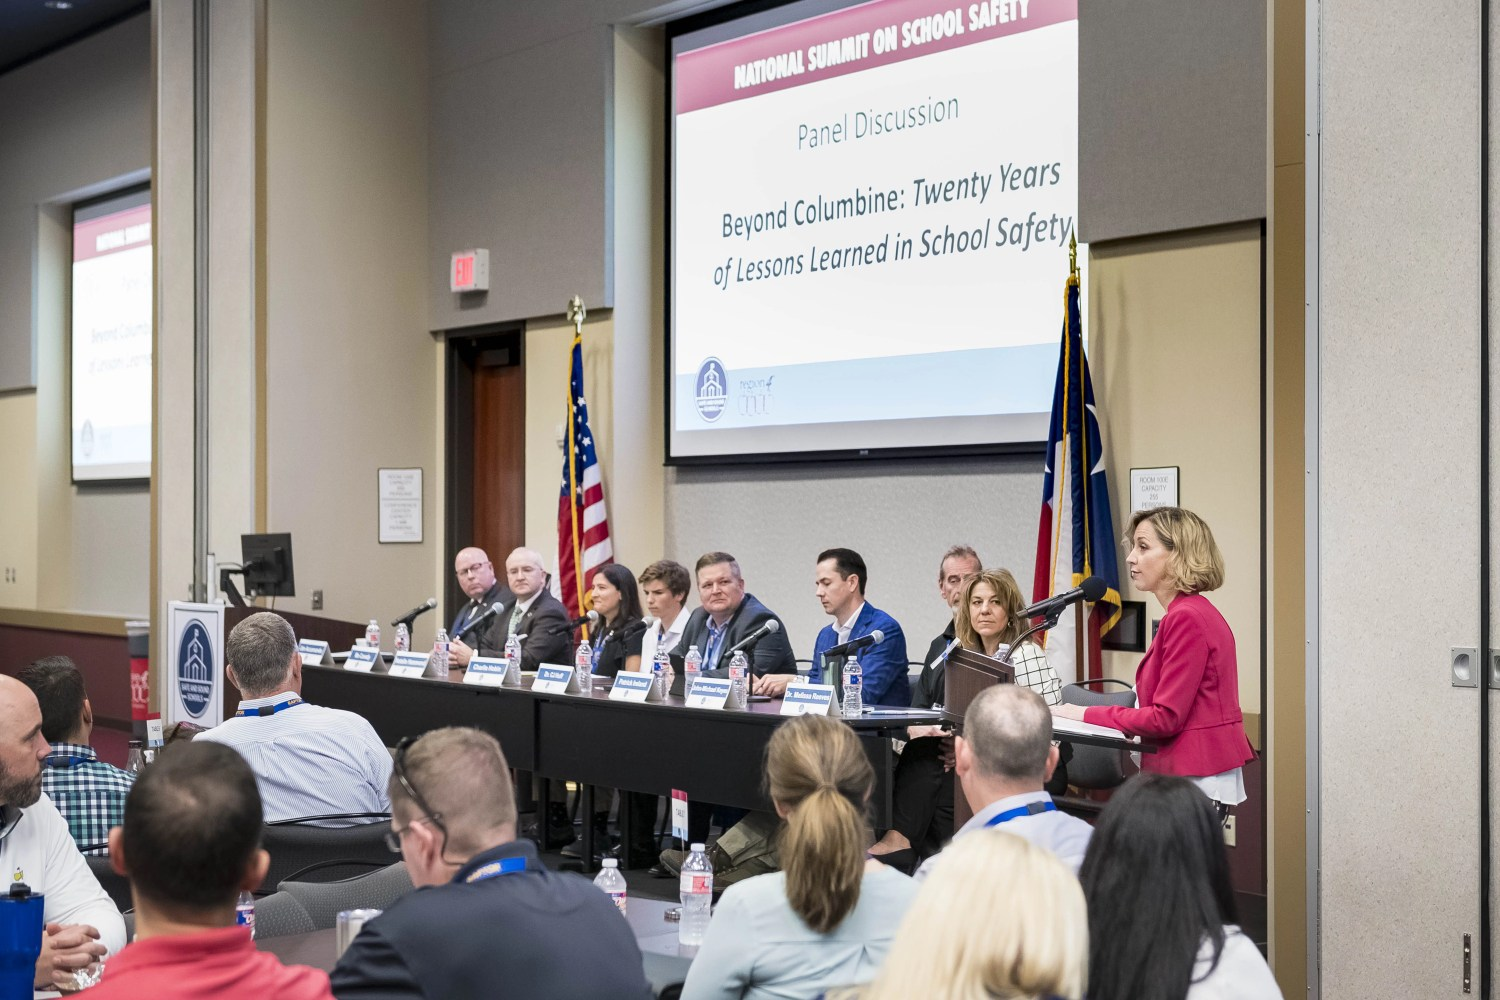 National Summit On School Safety – Safe and Sound Schools